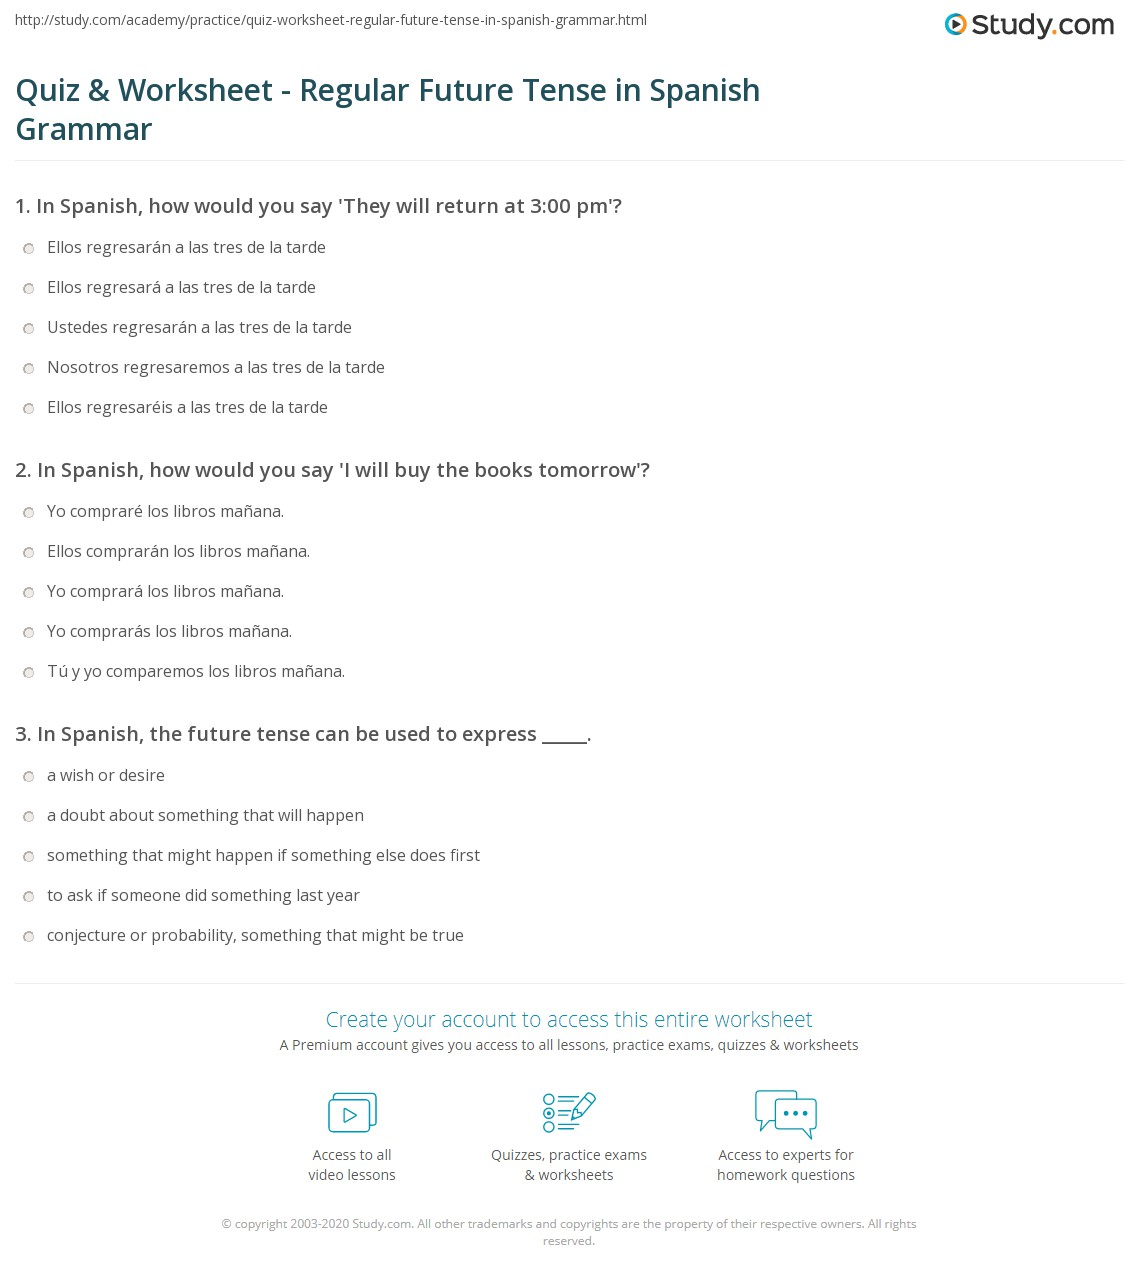 Quiz Worksheet Regular Future Tense In Spanish Grammar Study